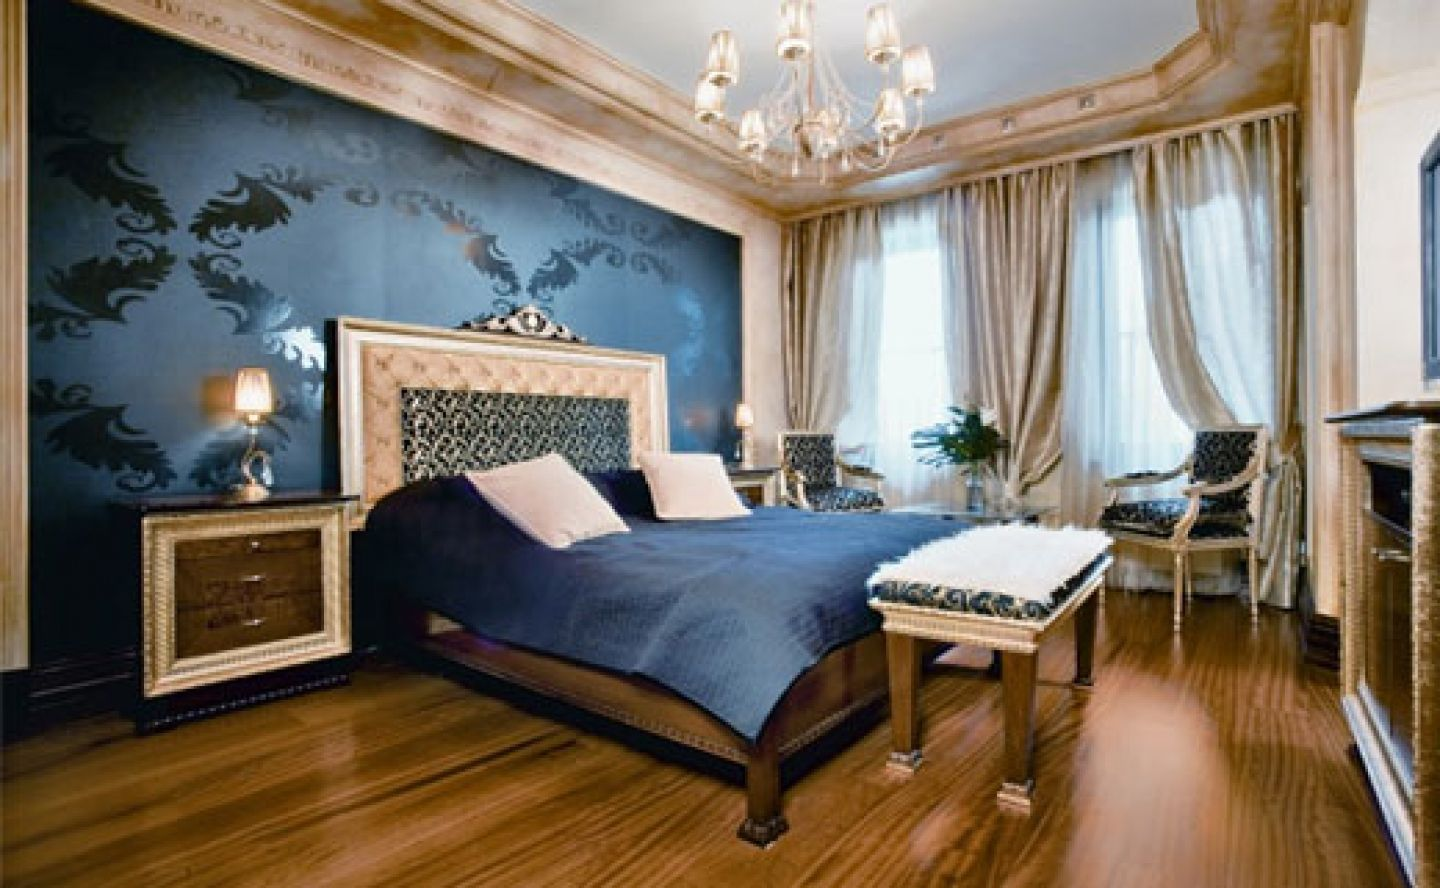 Luxury Bedroom Design Decorating Ideas With Dark Blue Wall Color And Wooden Floor, Love That … | Victorian Bedroom Decor, Luxurious Bedrooms, Country Bedroom Design